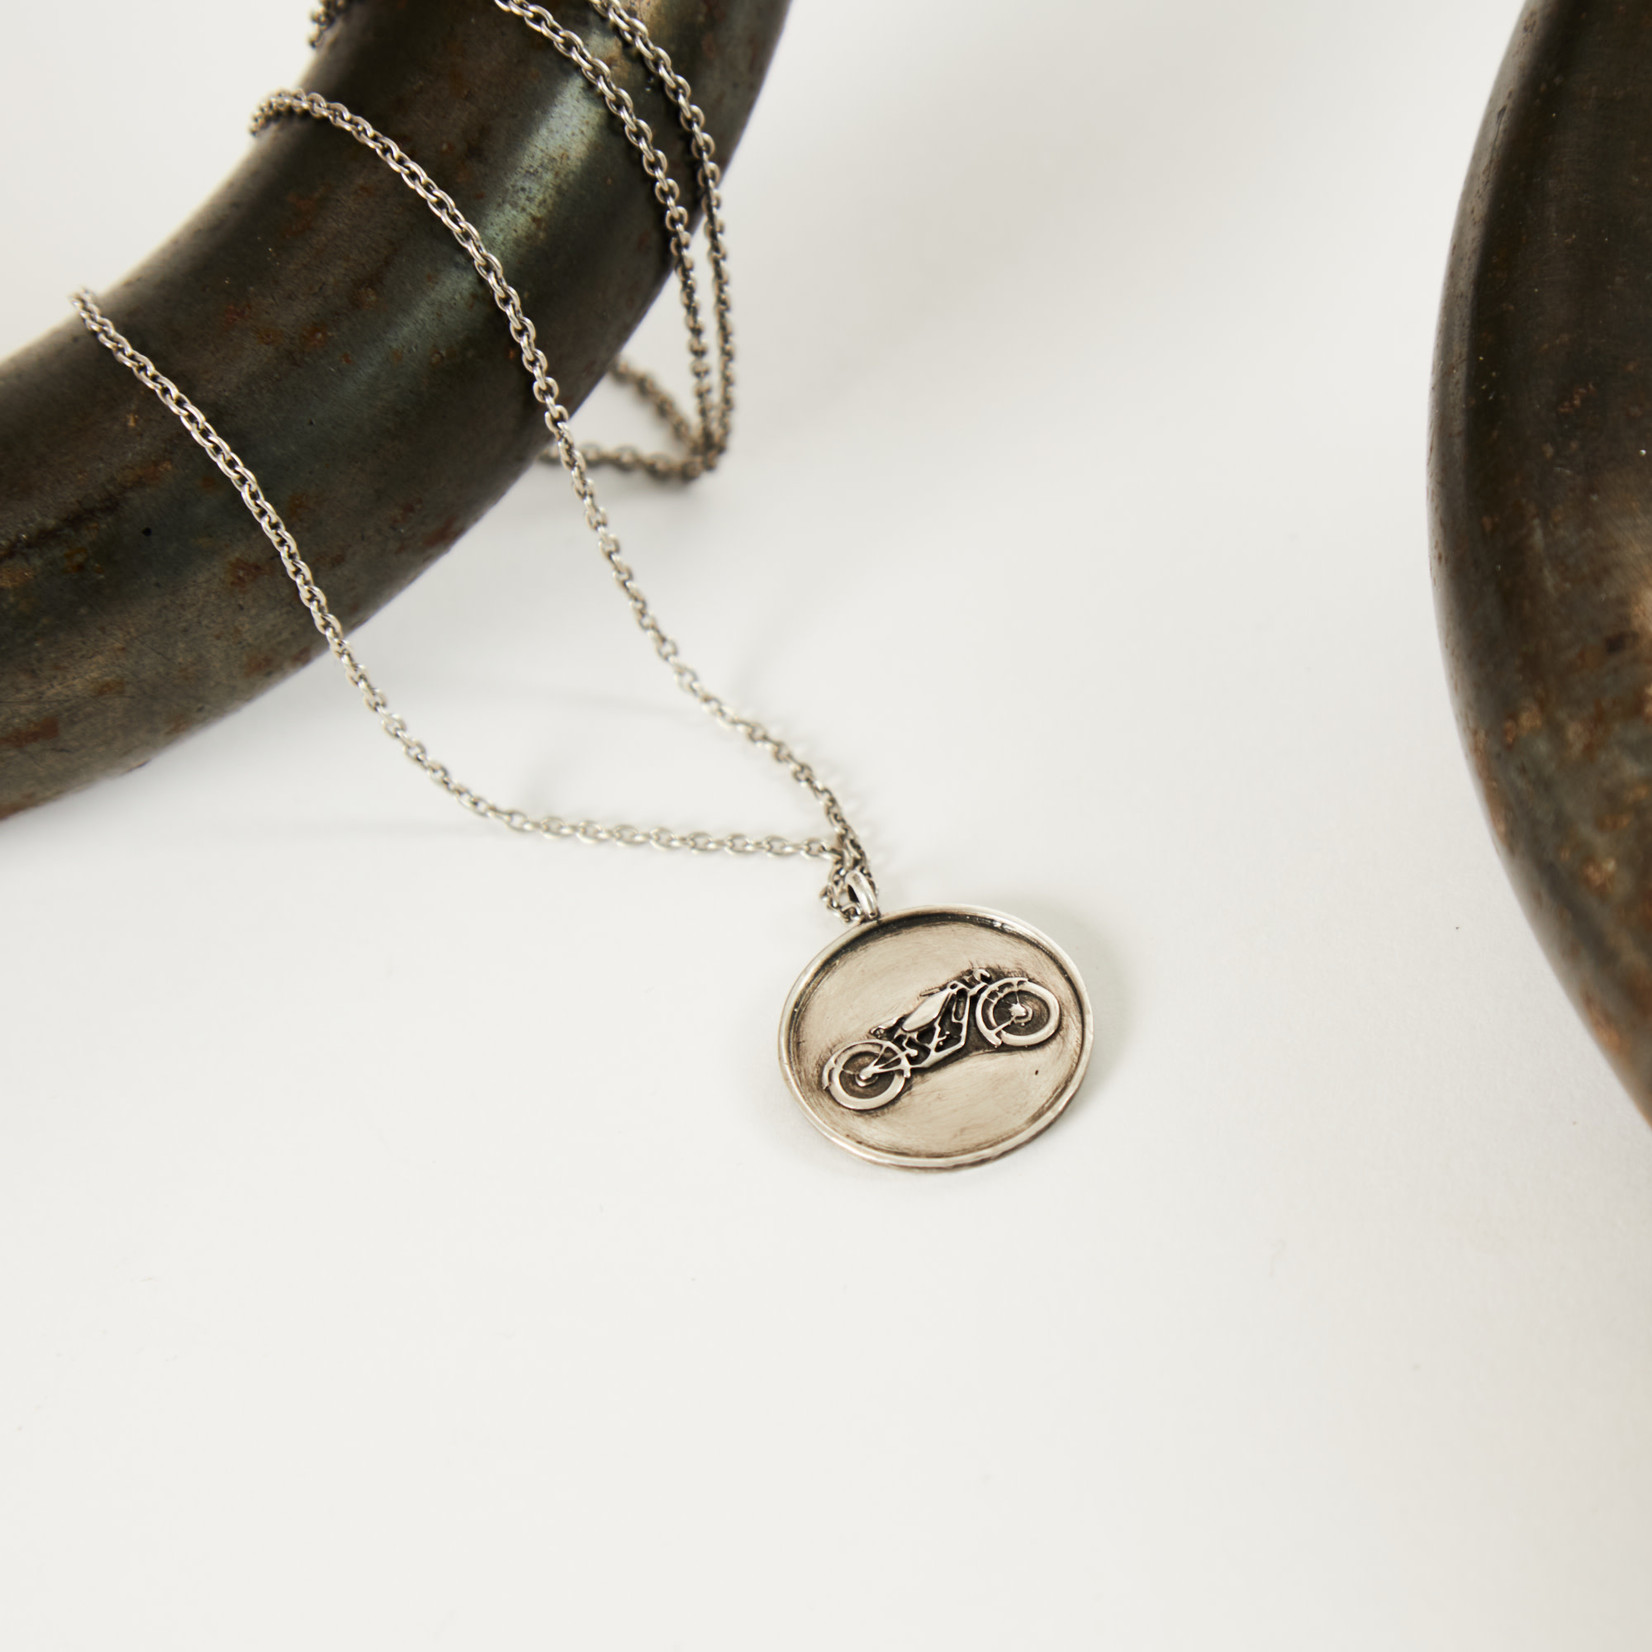 FSM Pendant with Chain